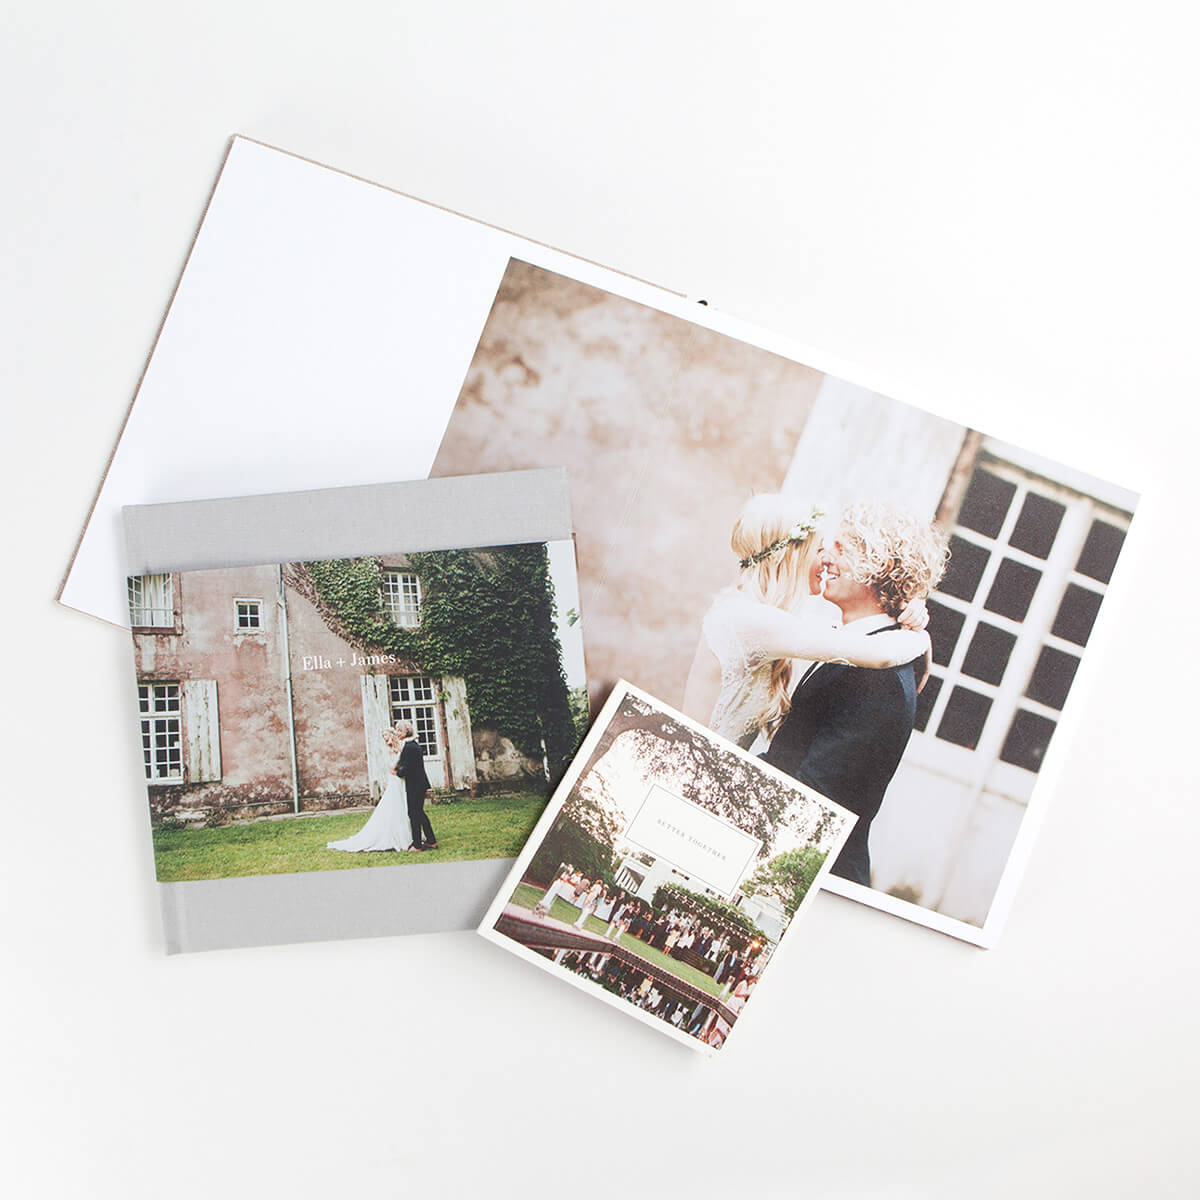 Hardcover photo book, softcover photo book, and layflat album with wedding photos